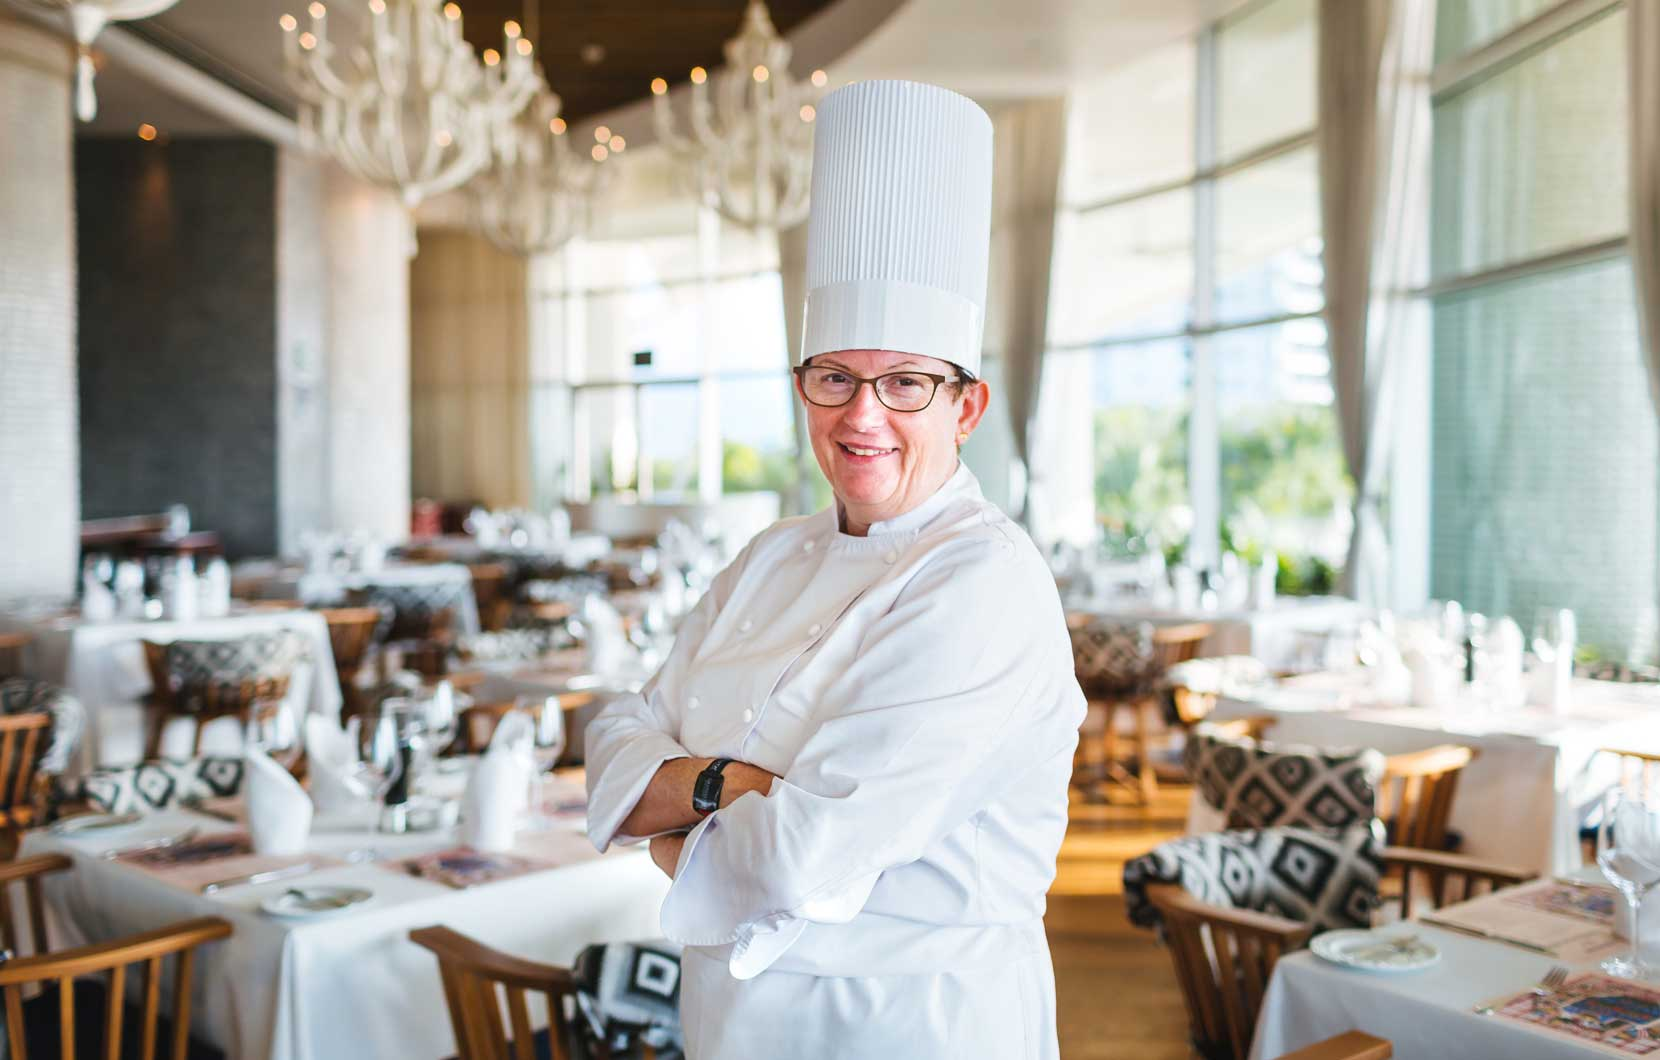 Chef Raymonde Wolff has been eager to bring her personal flair to Mexico.